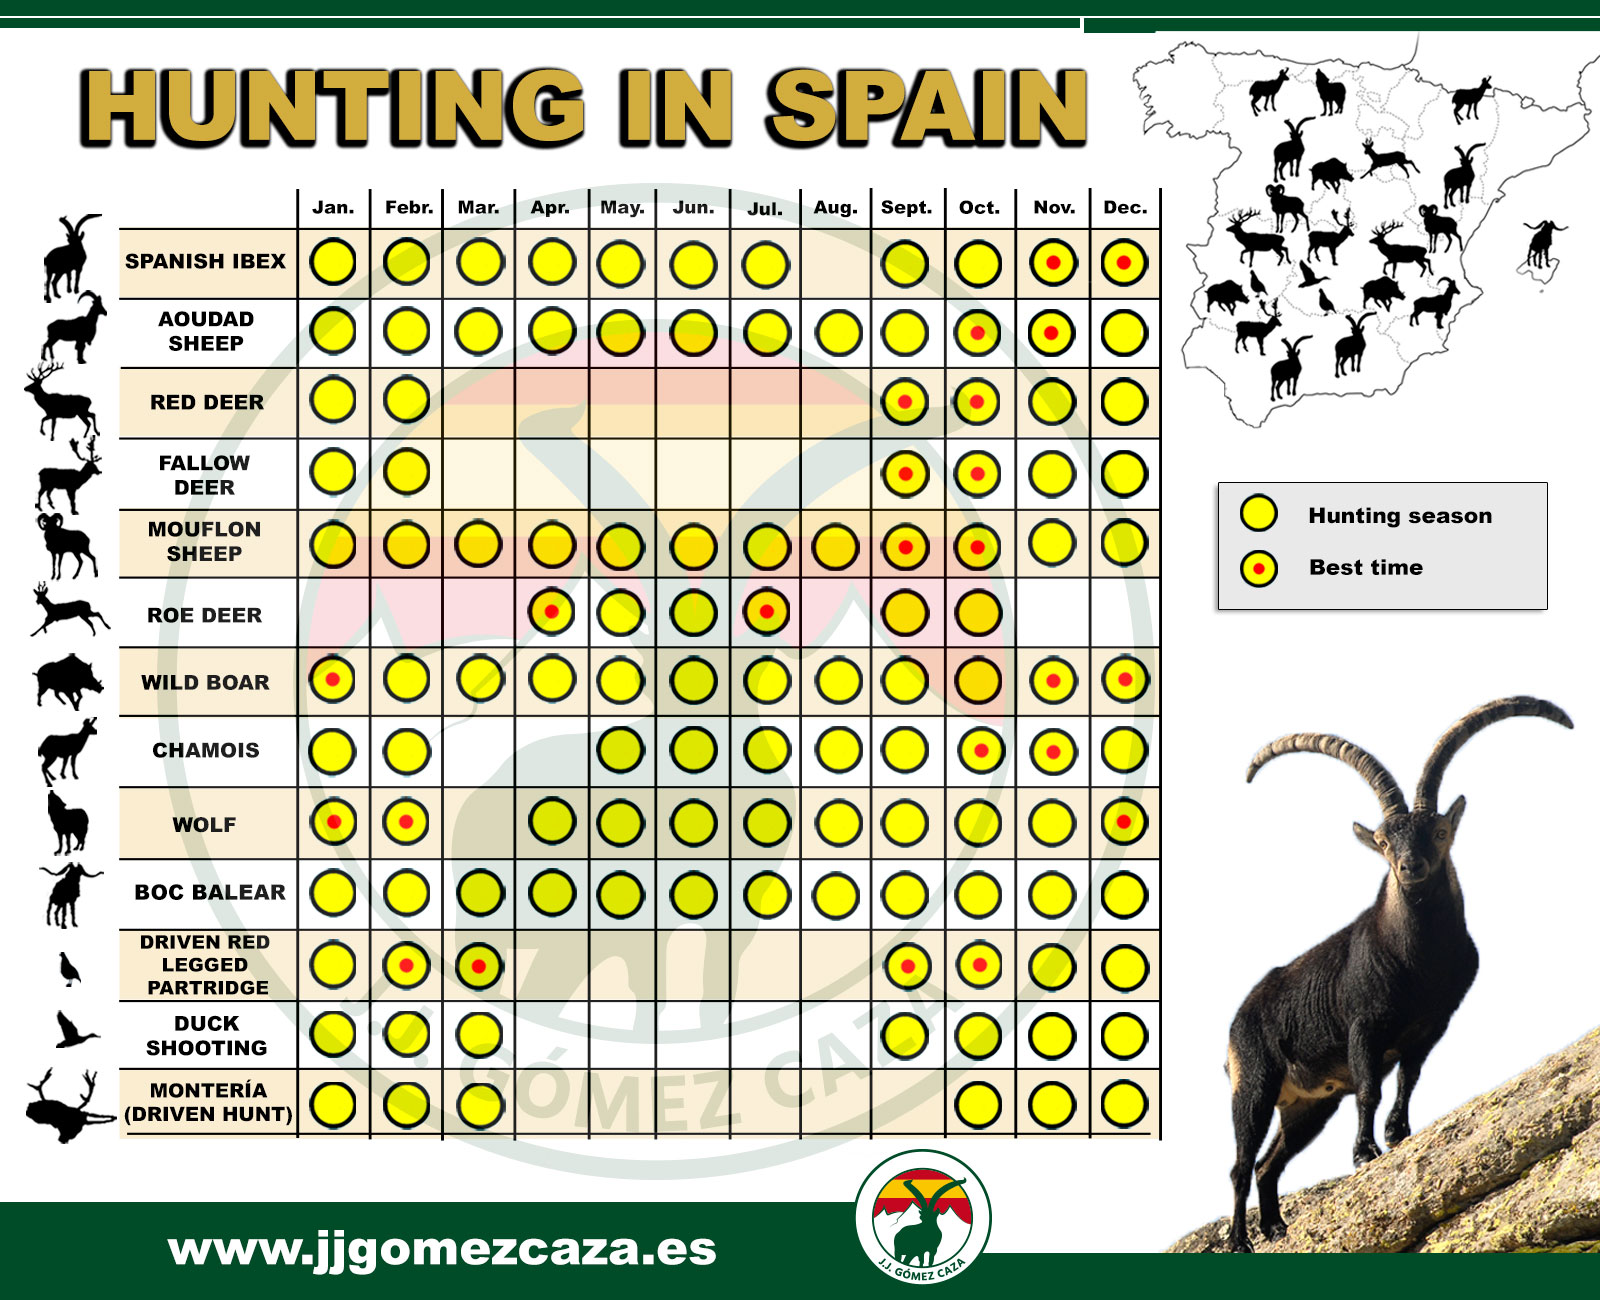 hunting season in spain